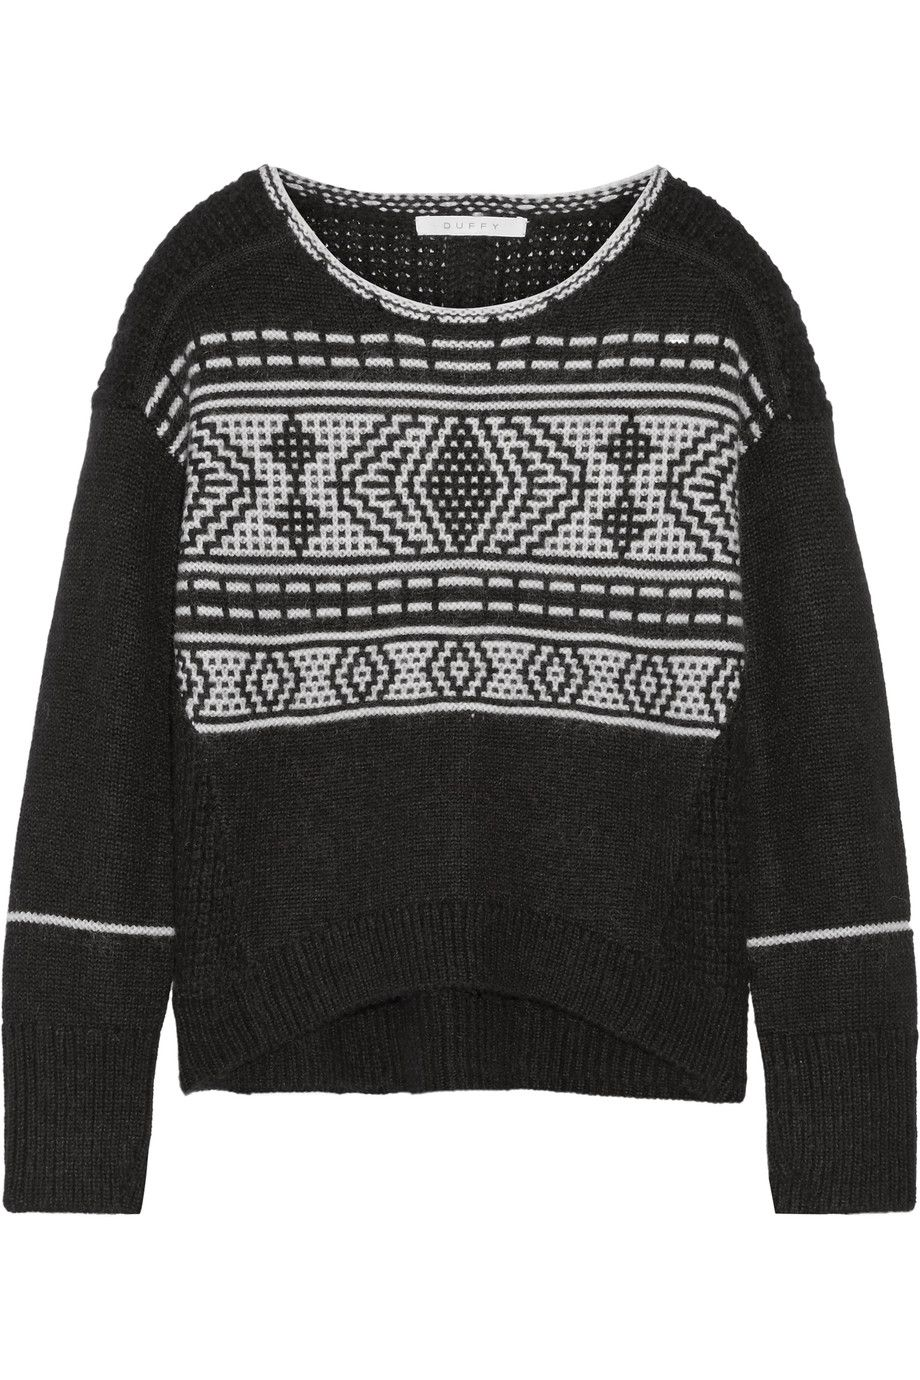 DUFFY Fair Isle merino wool-blend sweater. #duffy #cloth #sweater ...